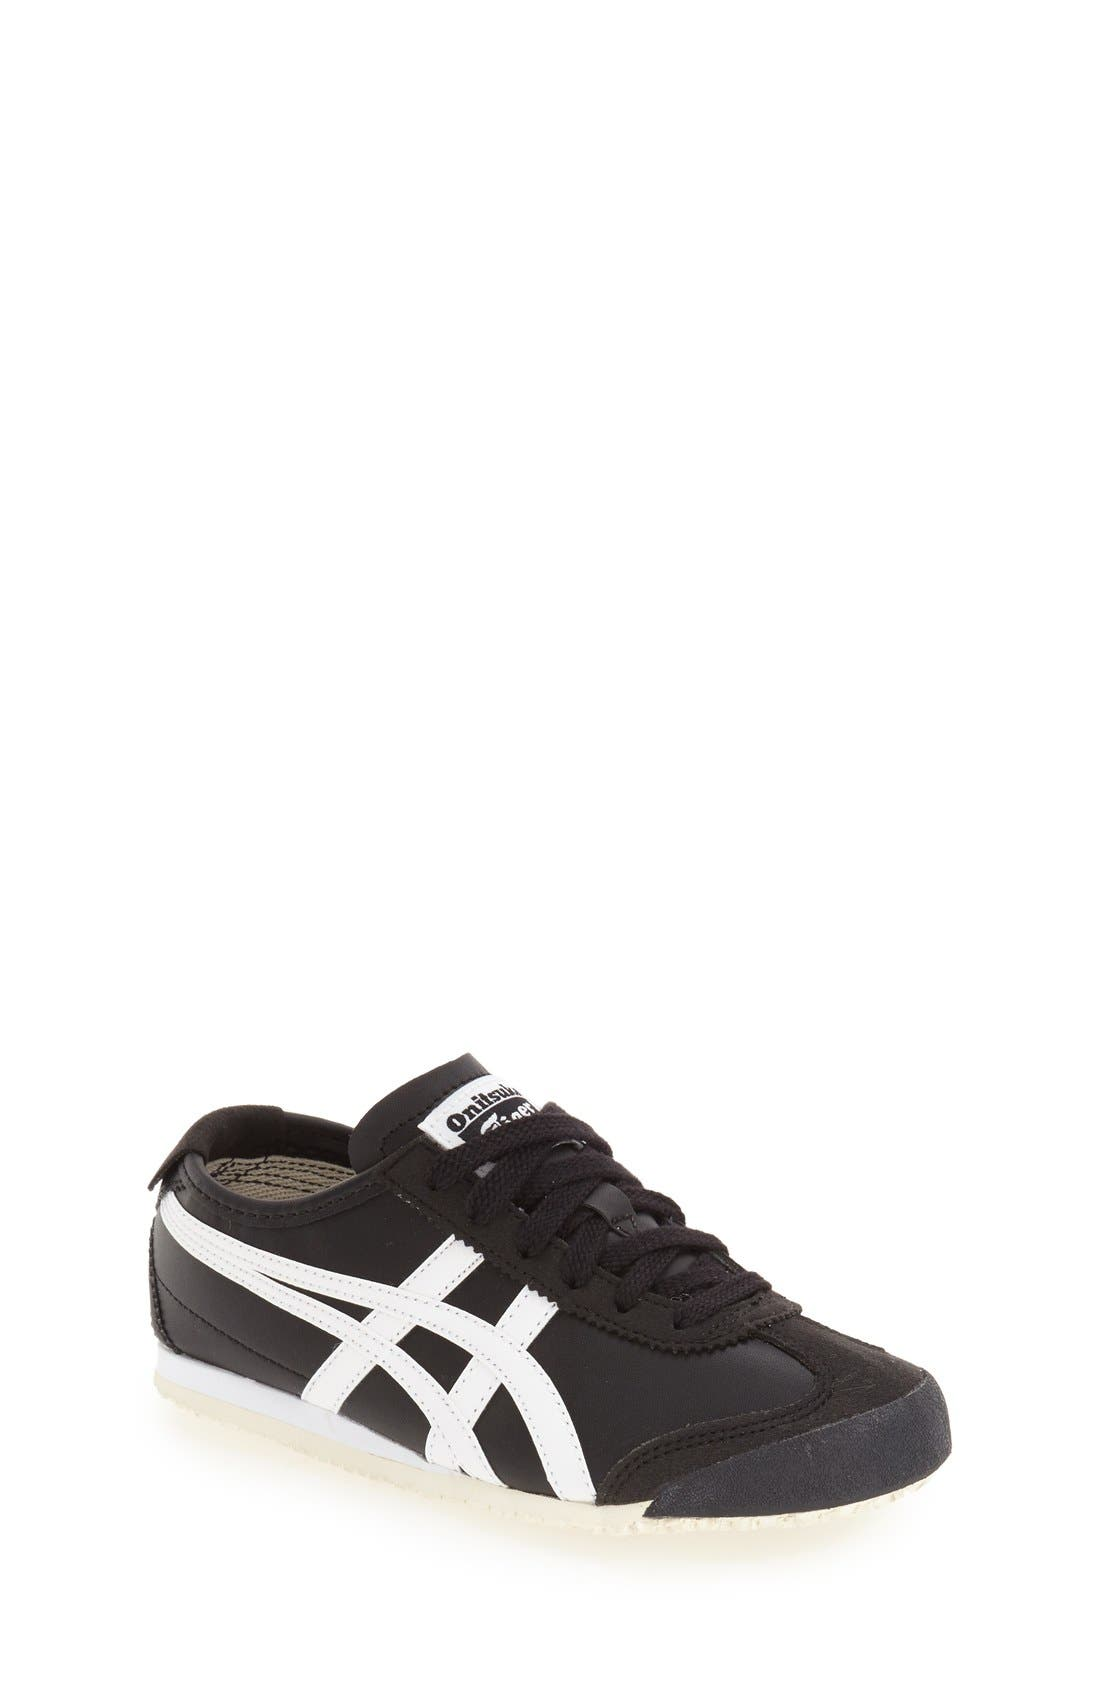 'Mexico 66 Baja' Sneaker,                         Main,                         color, BLACK/ WHITE